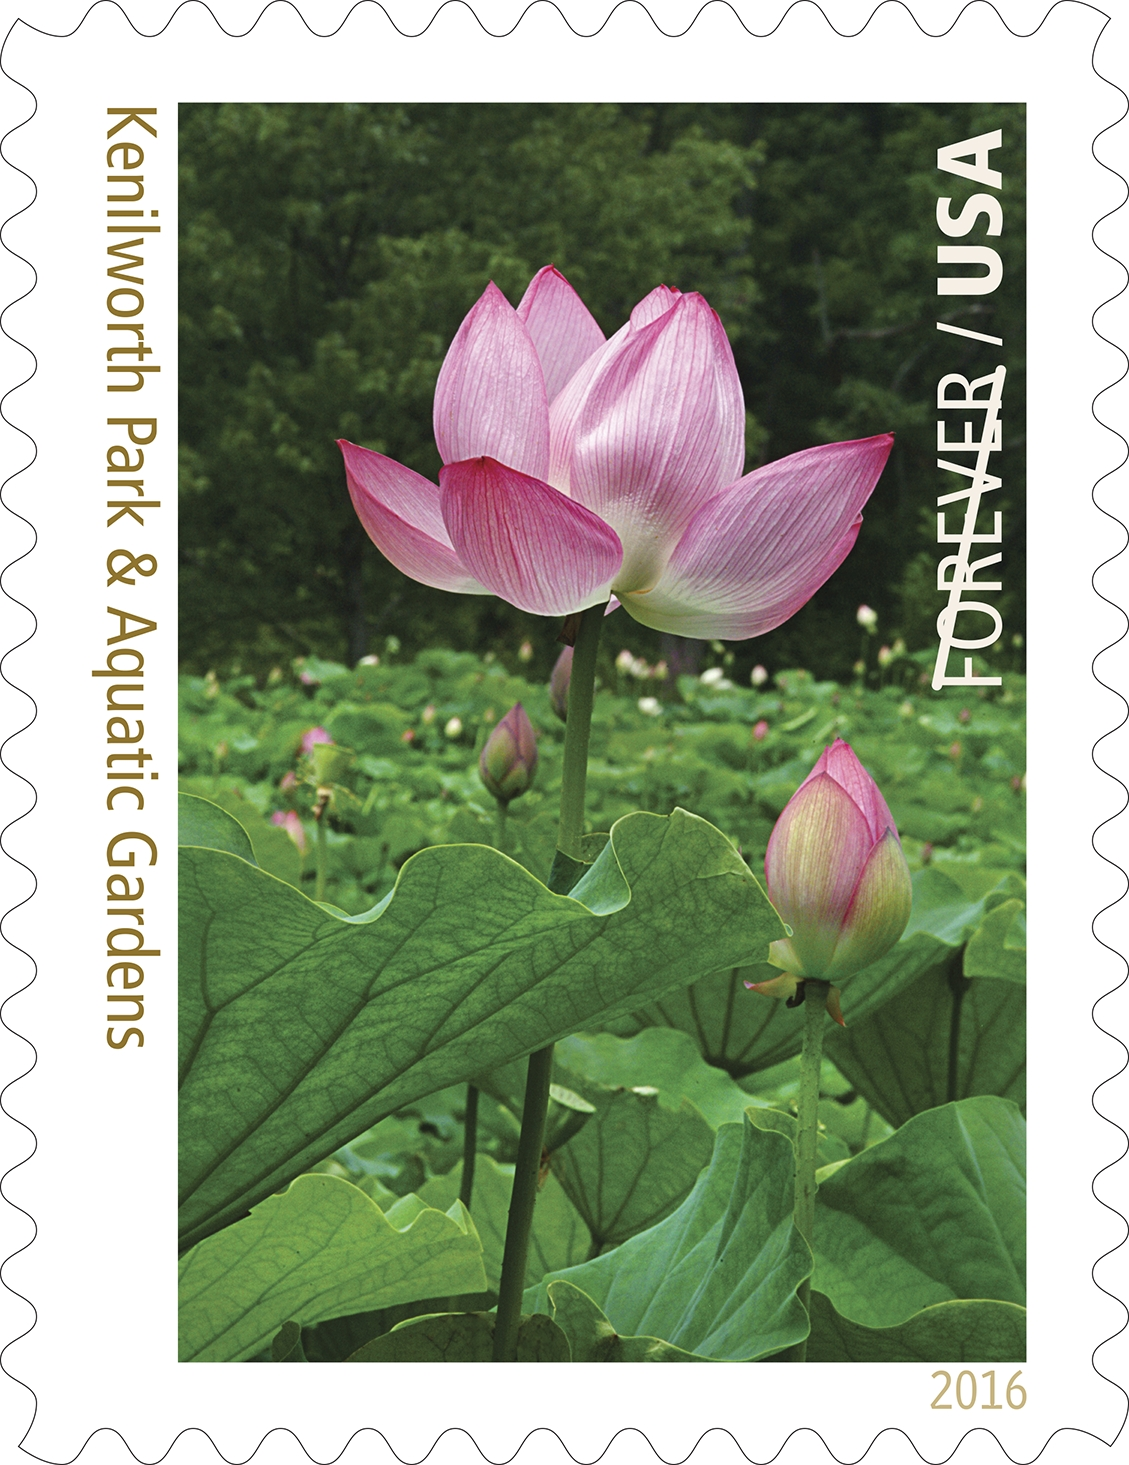 usps new stamp issues 2016 forever stamps stamp news now